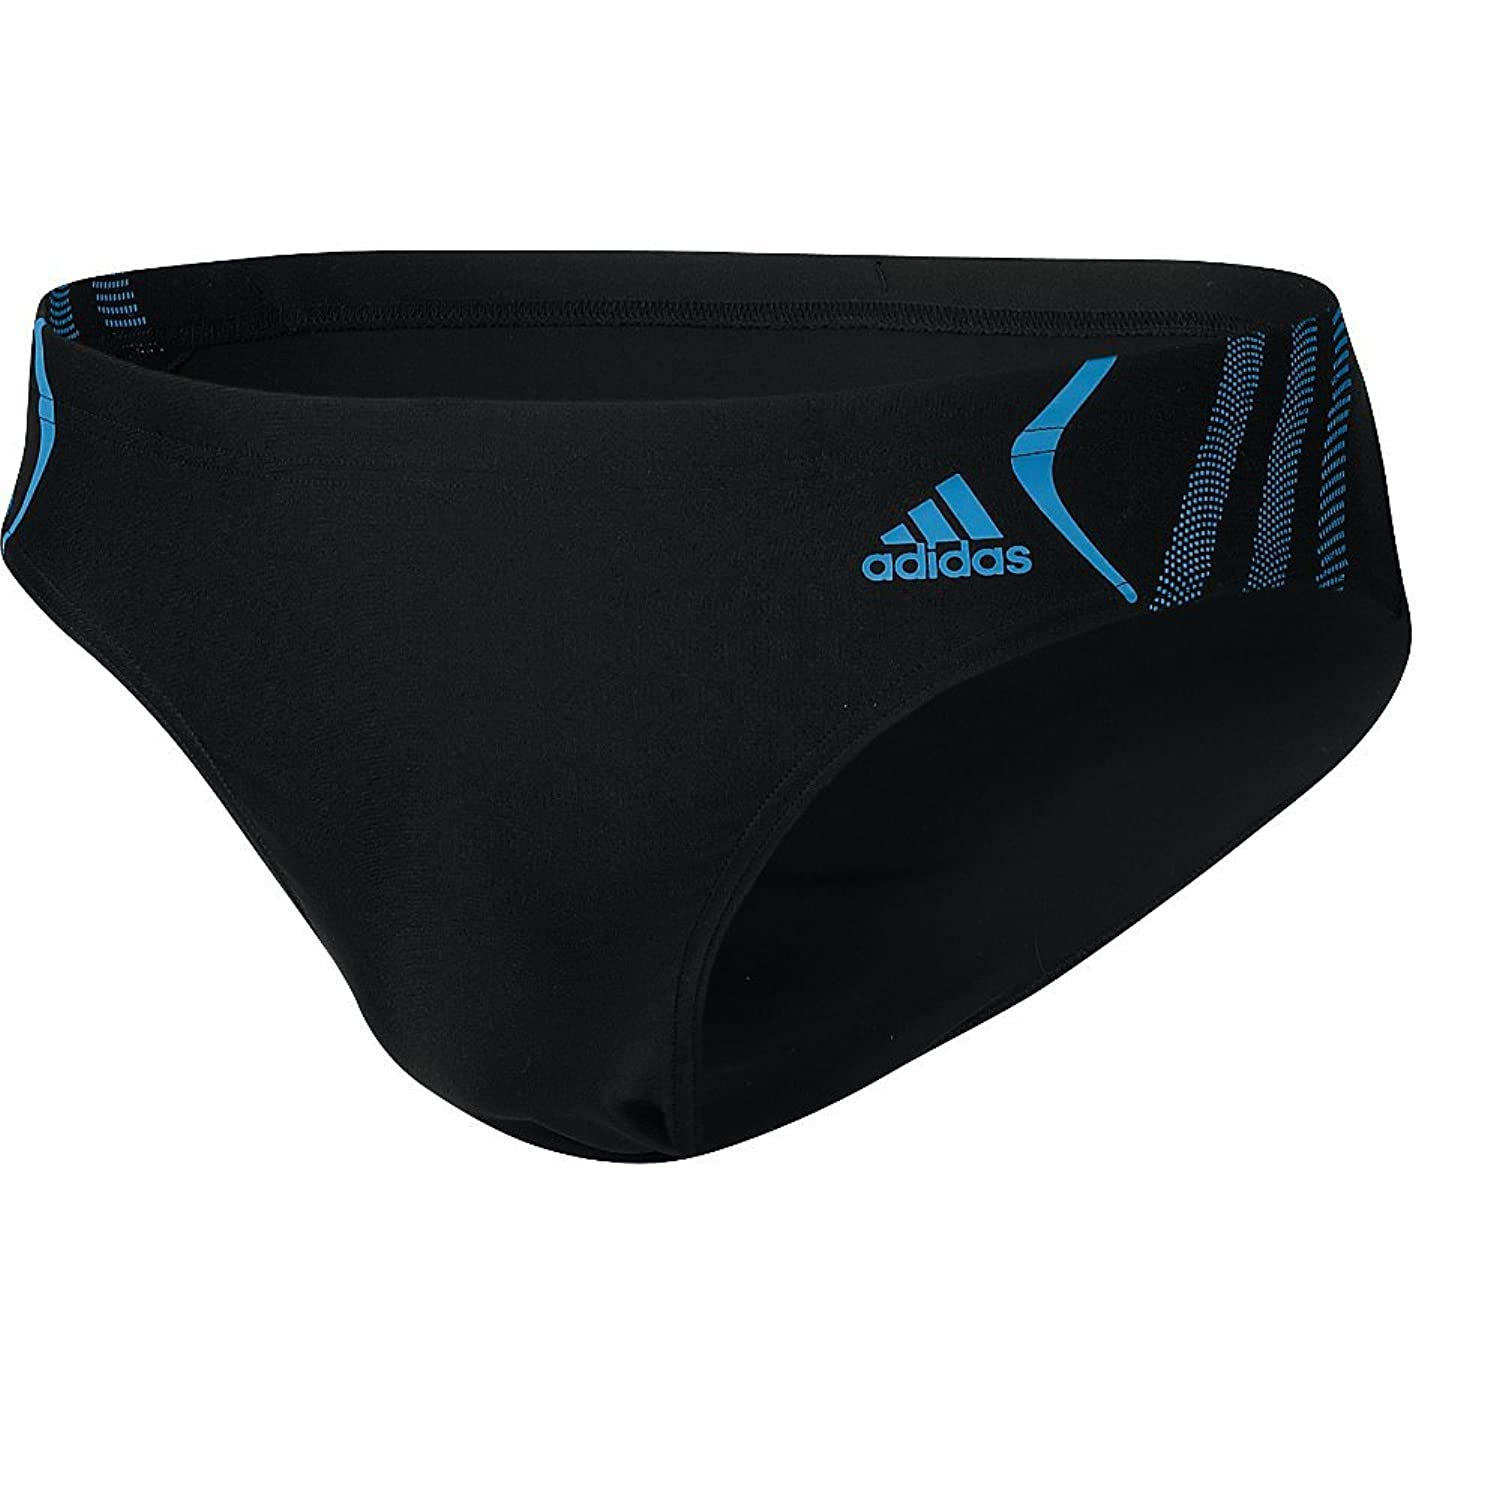 ADIDAS swimming brief